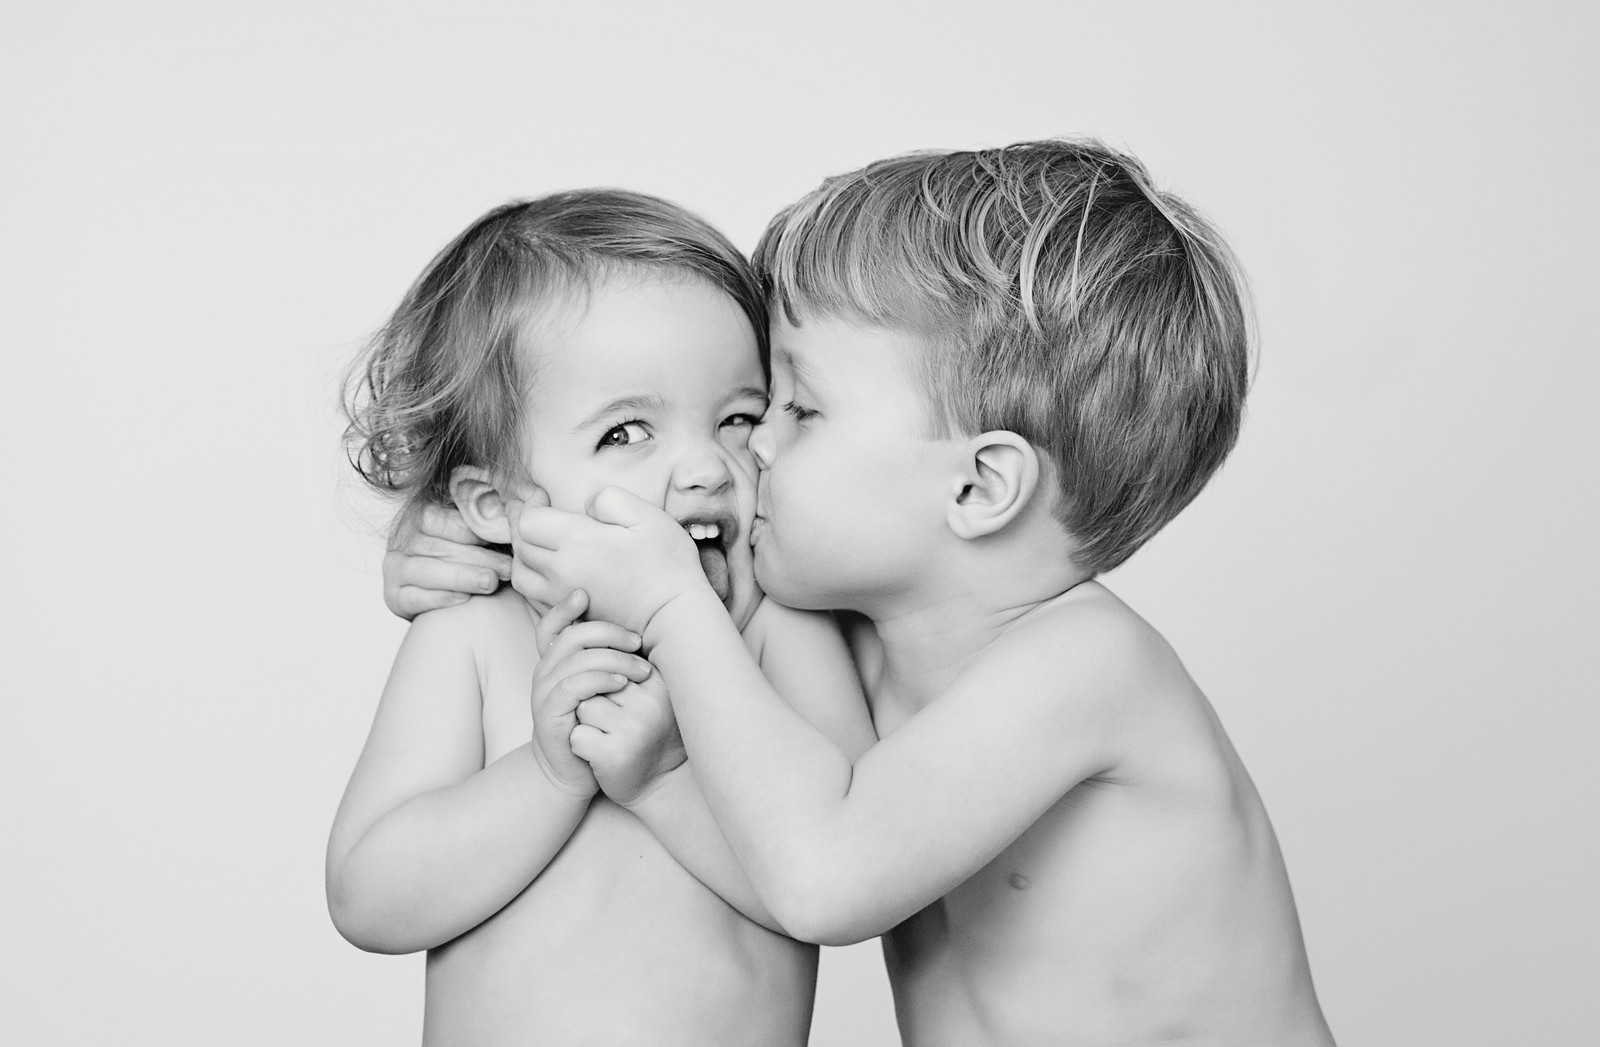 Child and kids photographer milk photography studio